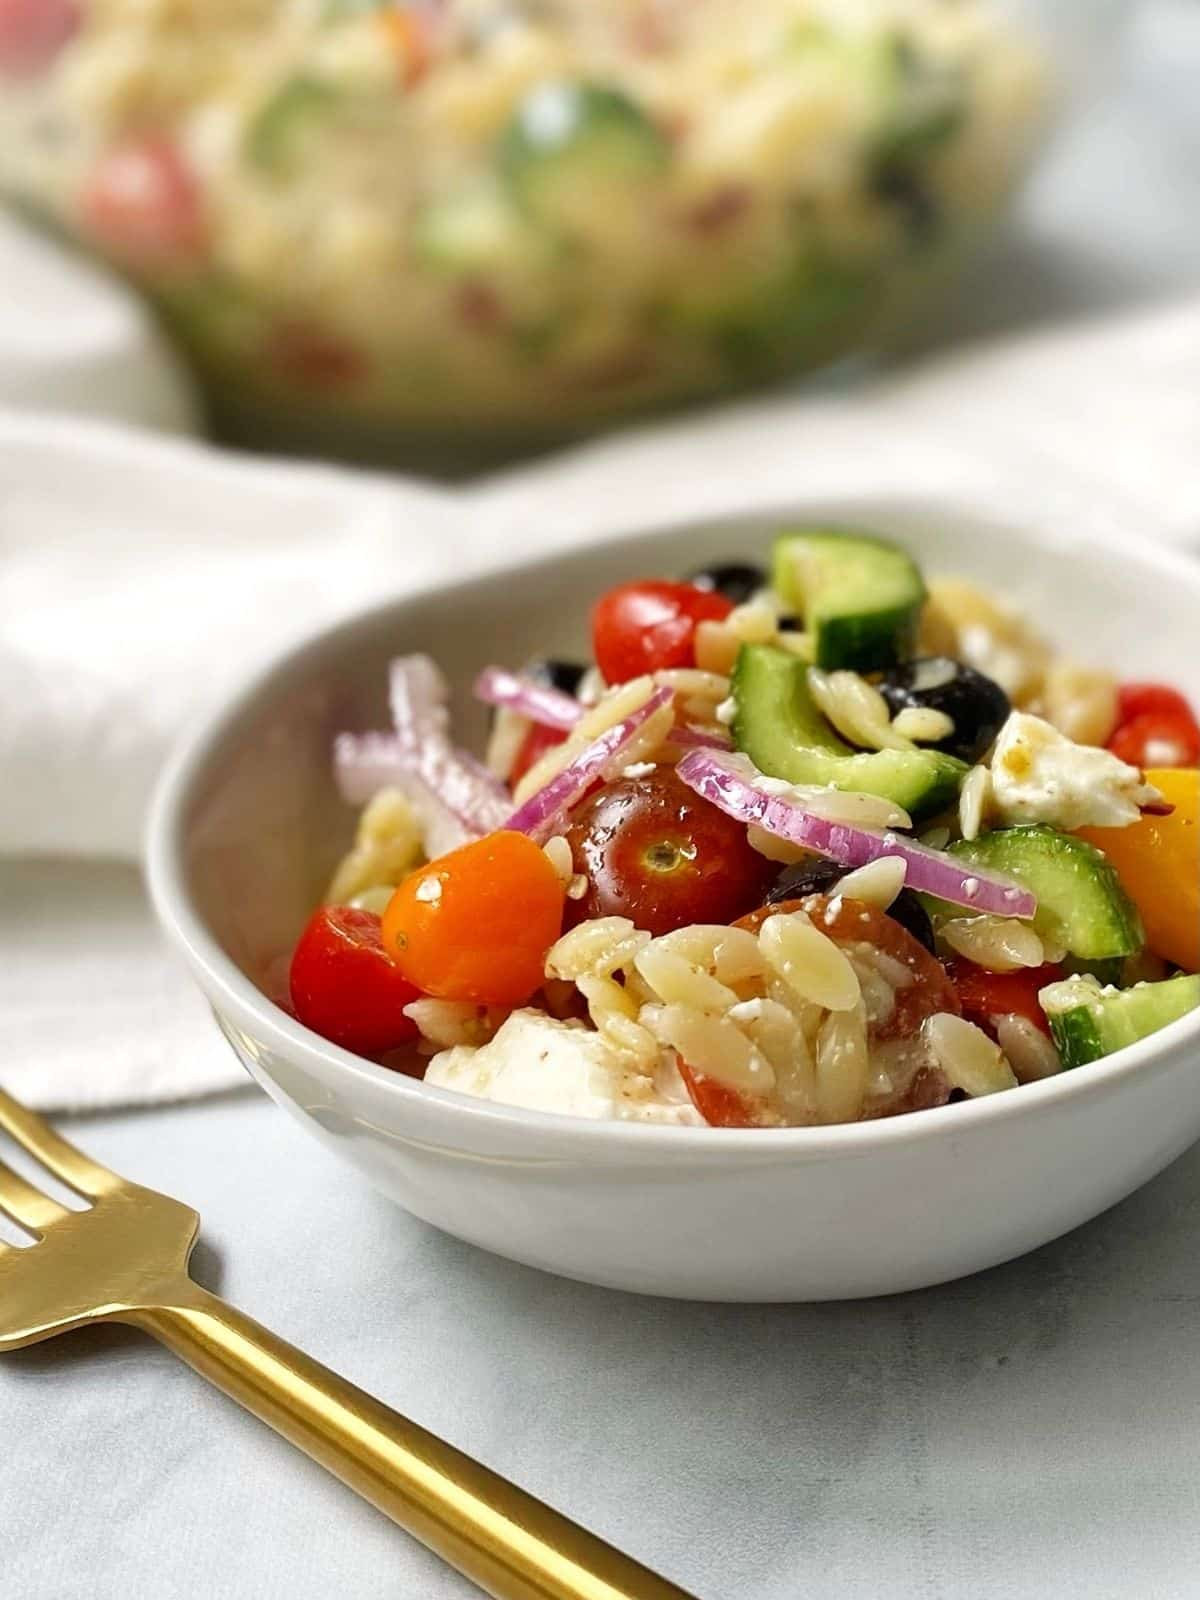 side view of small dish of salad in a white bowl